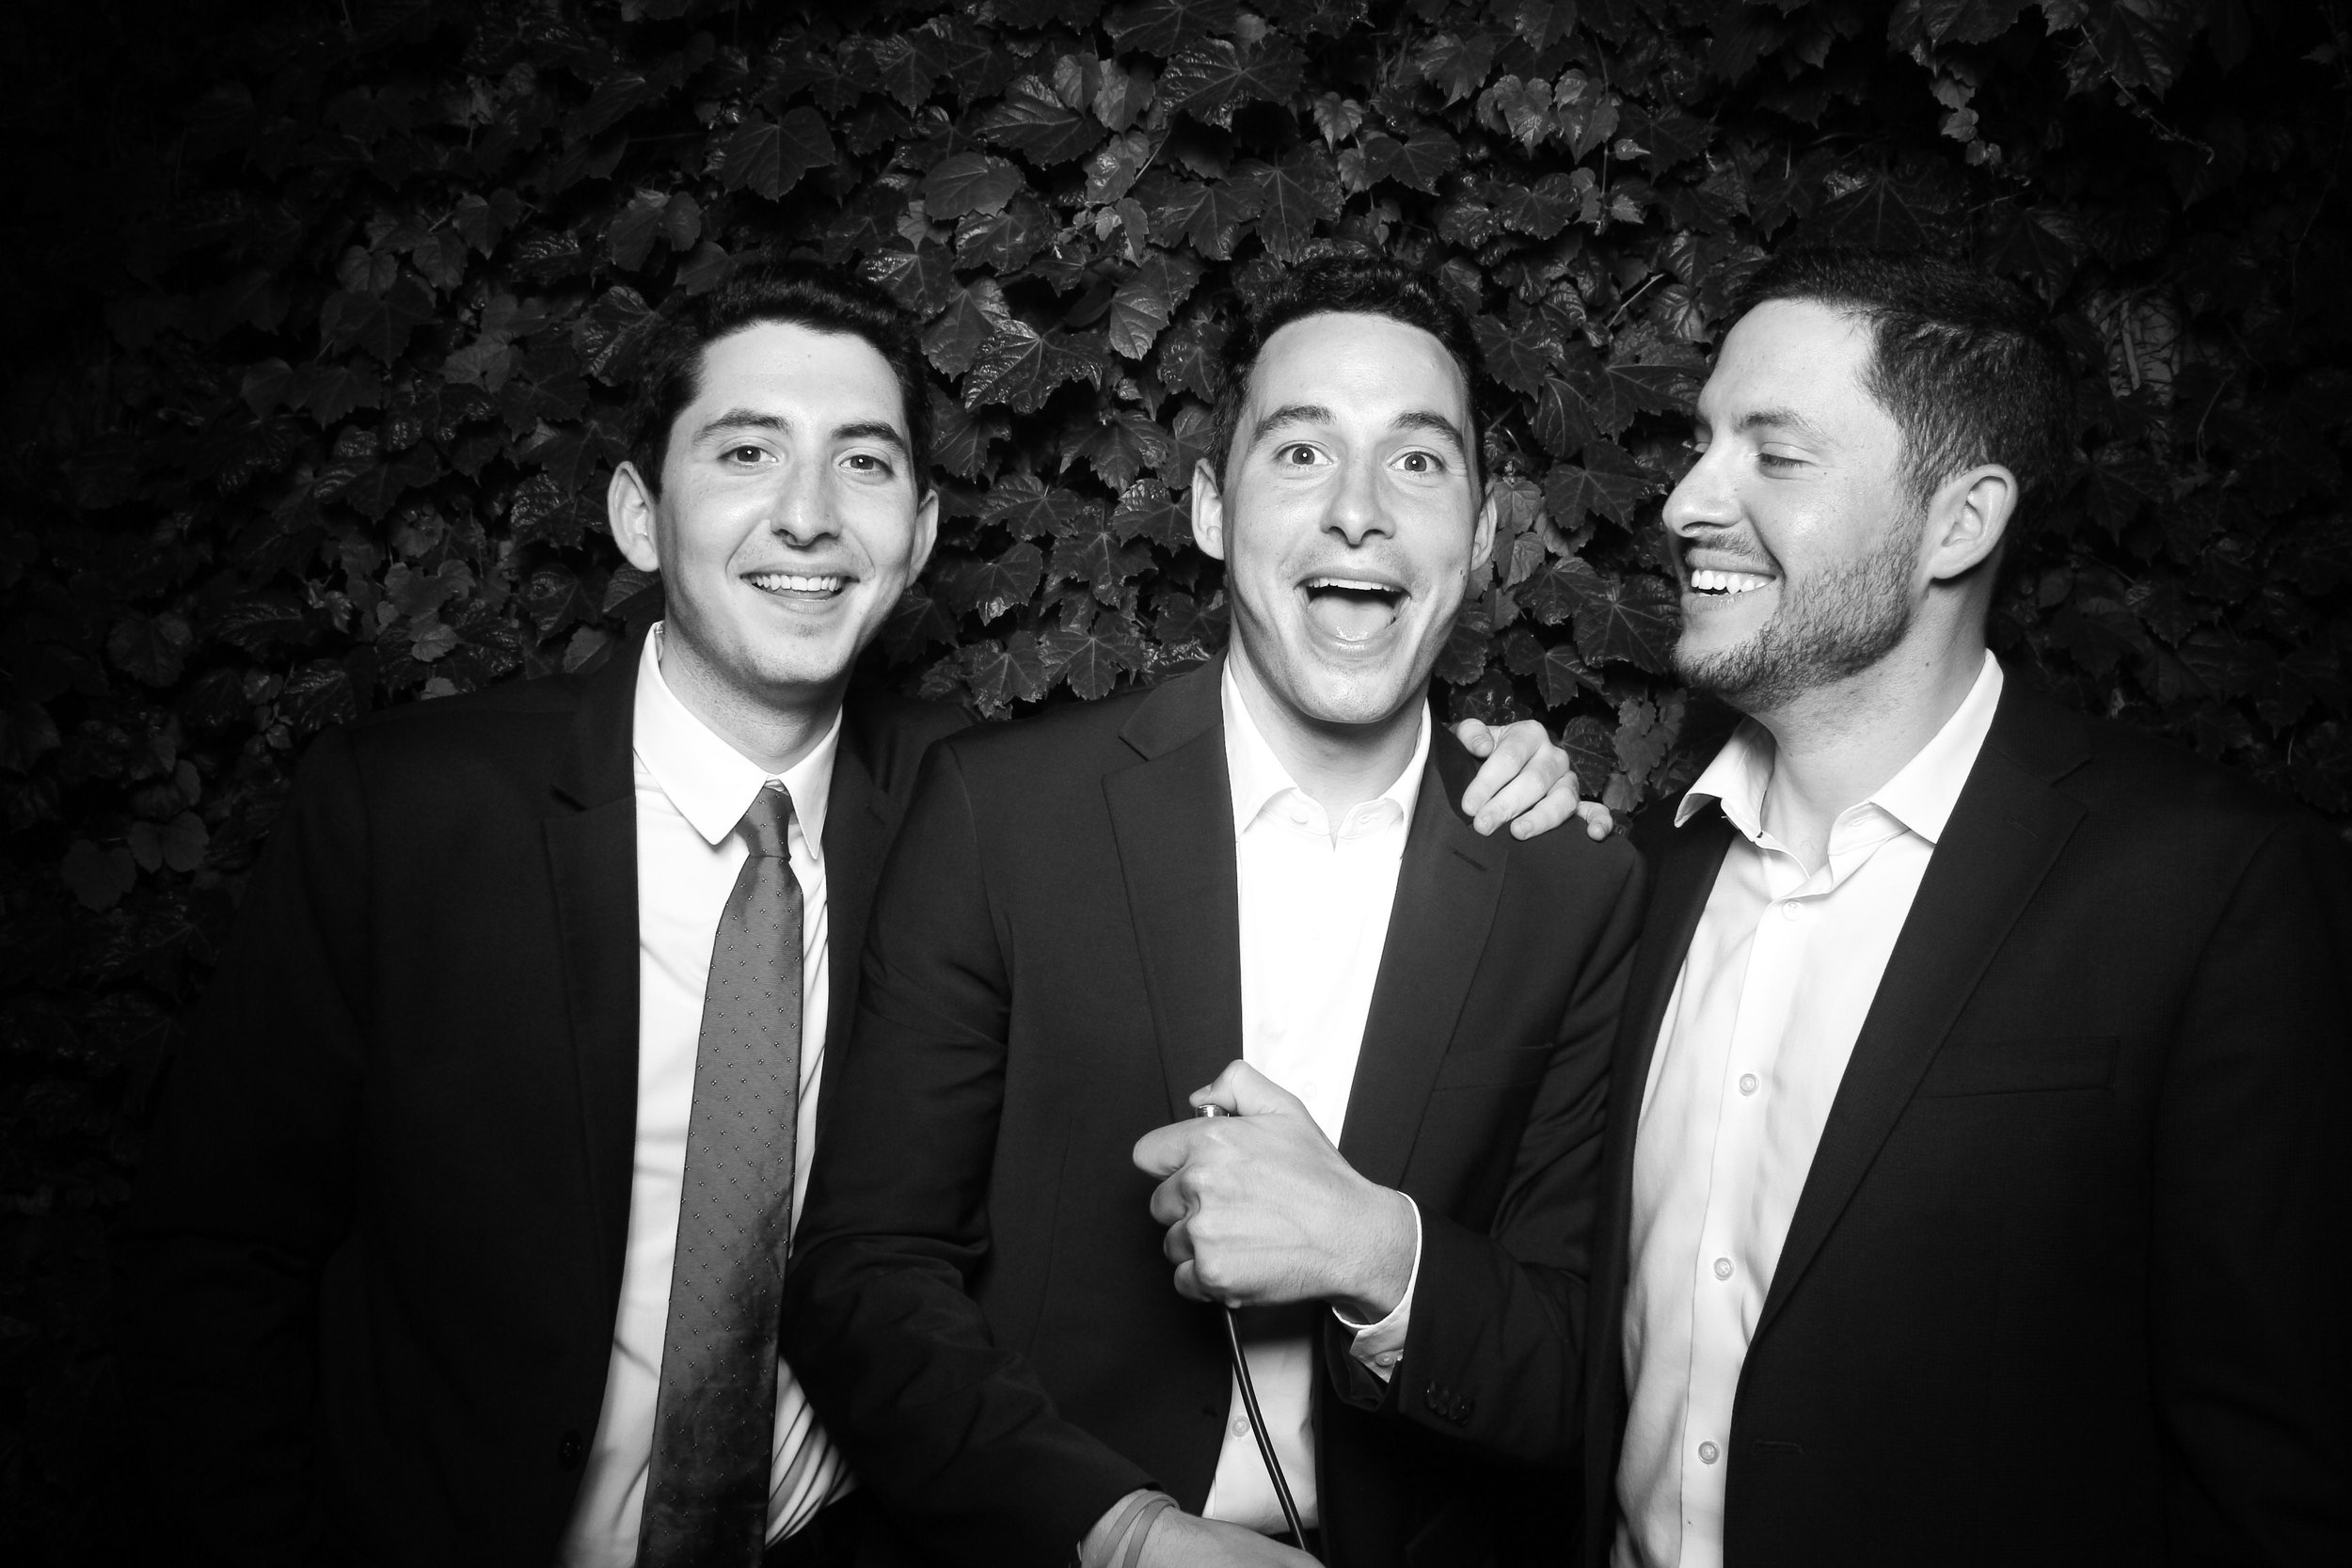 Galleria_Marchetti_Wedding_Reception_Chicago_Ivy_07.jpg